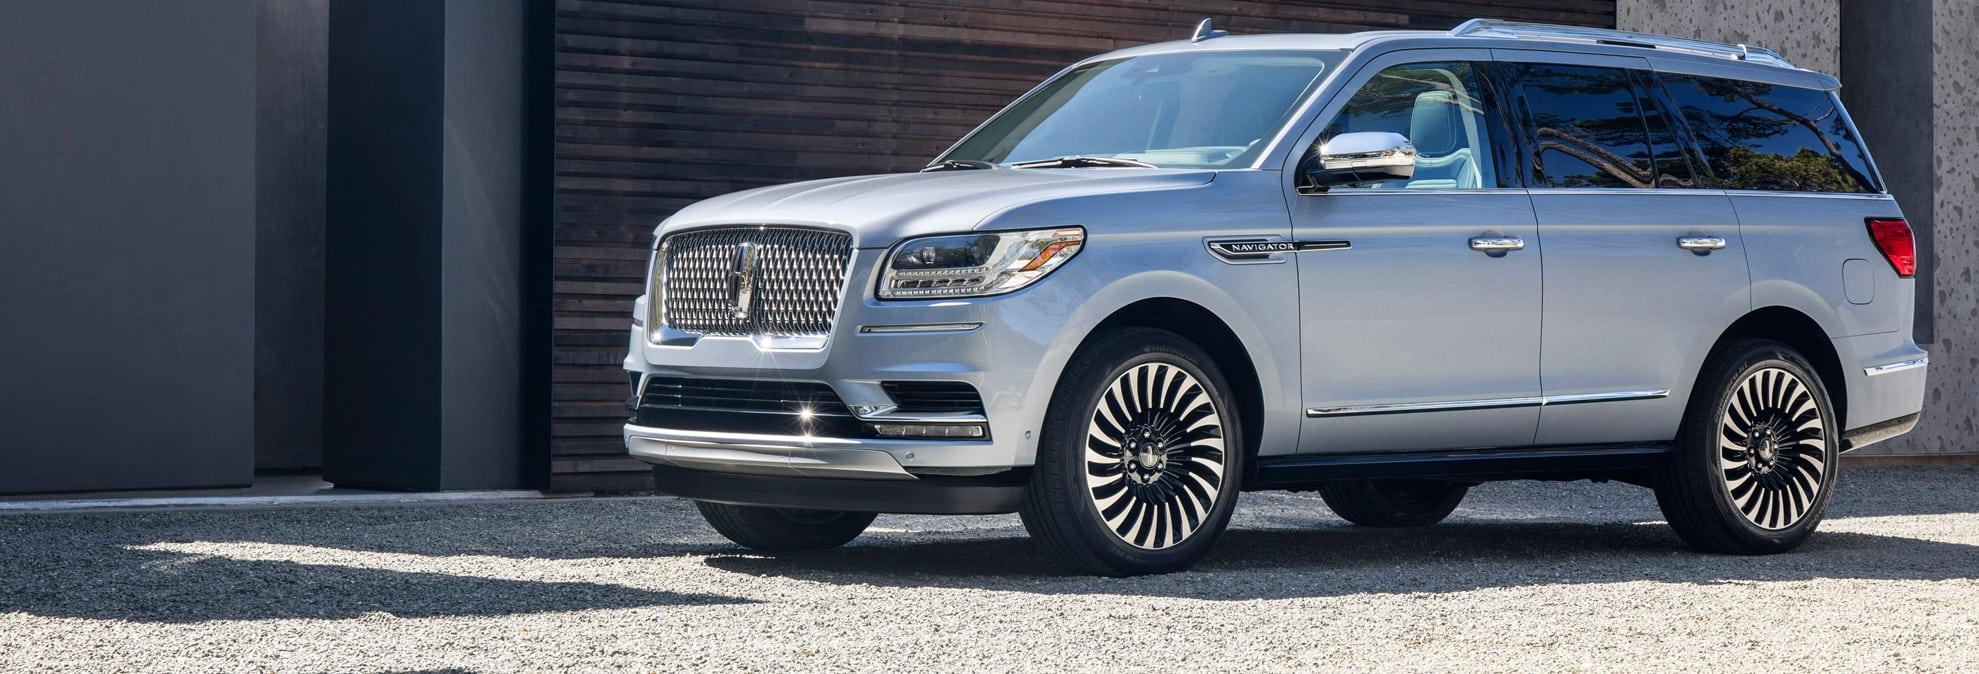 all new 2018 lincoln navigator boasts first class family travel. Black Bedroom Furniture Sets. Home Design Ideas